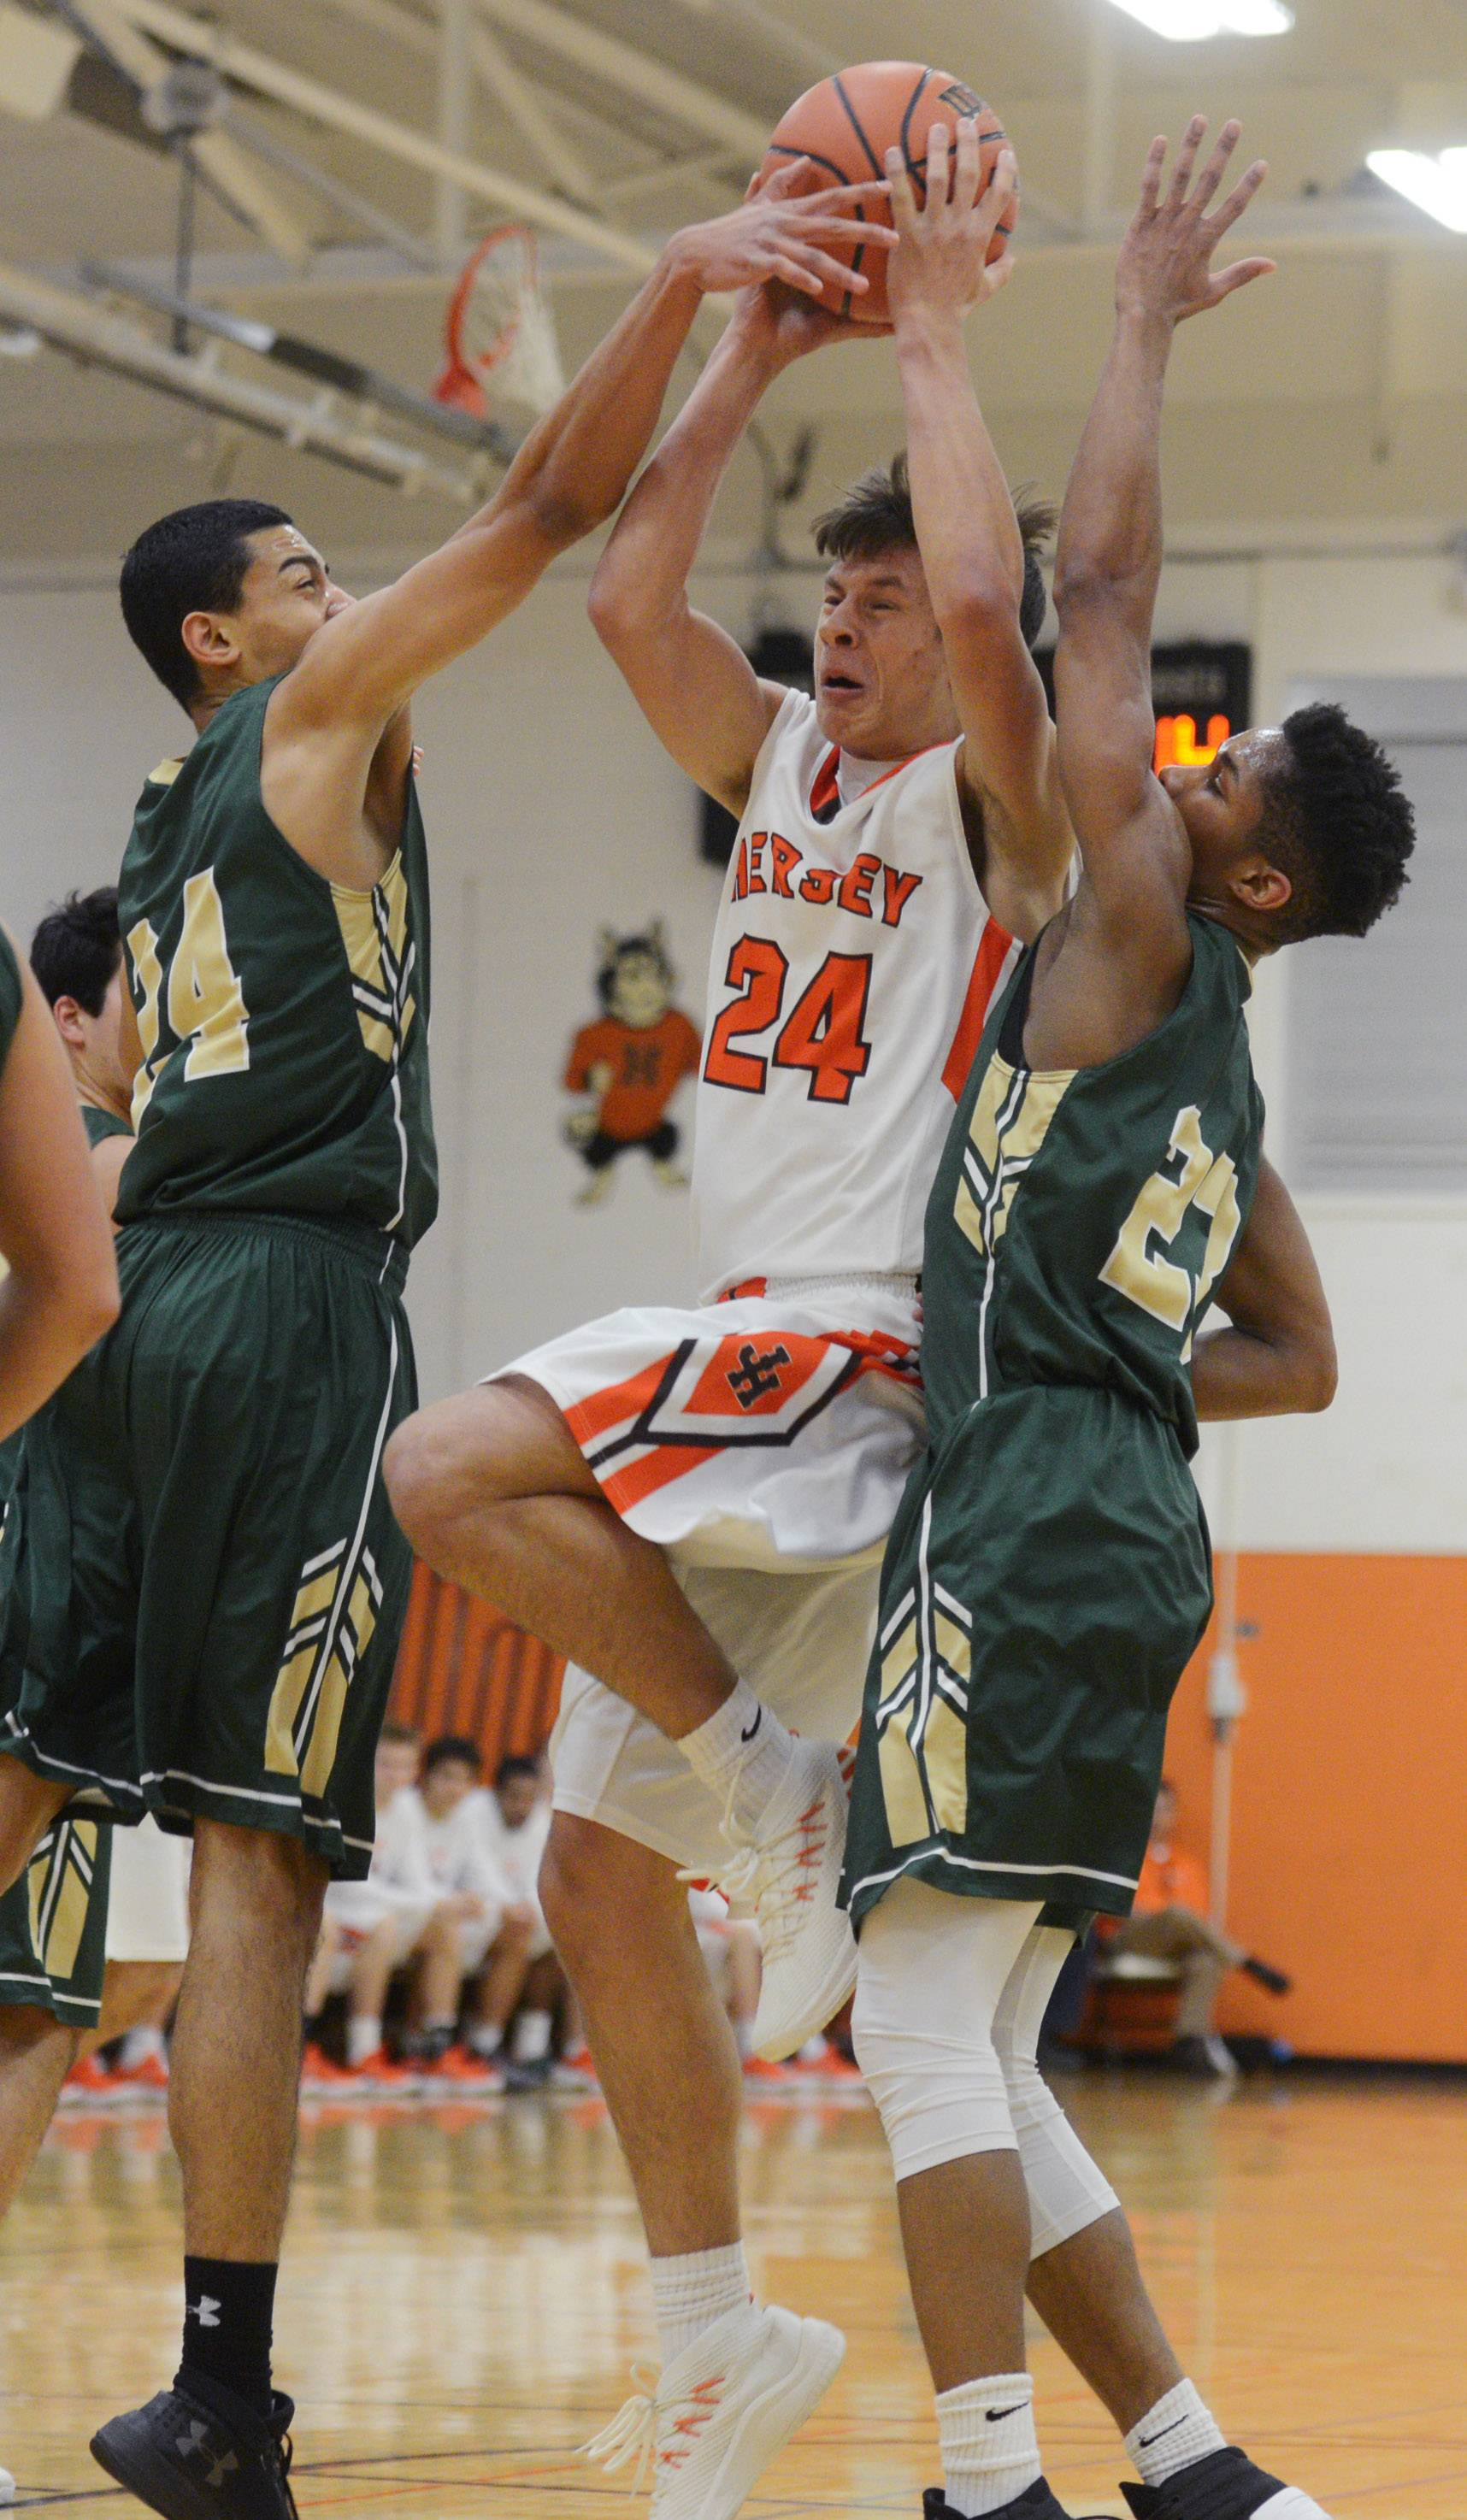 Hersey's Rocco Ronzio makes a move to the basket between Fremd's Bryce Hopkins, left, and Isaiah Turner during Tuesday's game in Arlington Heights.